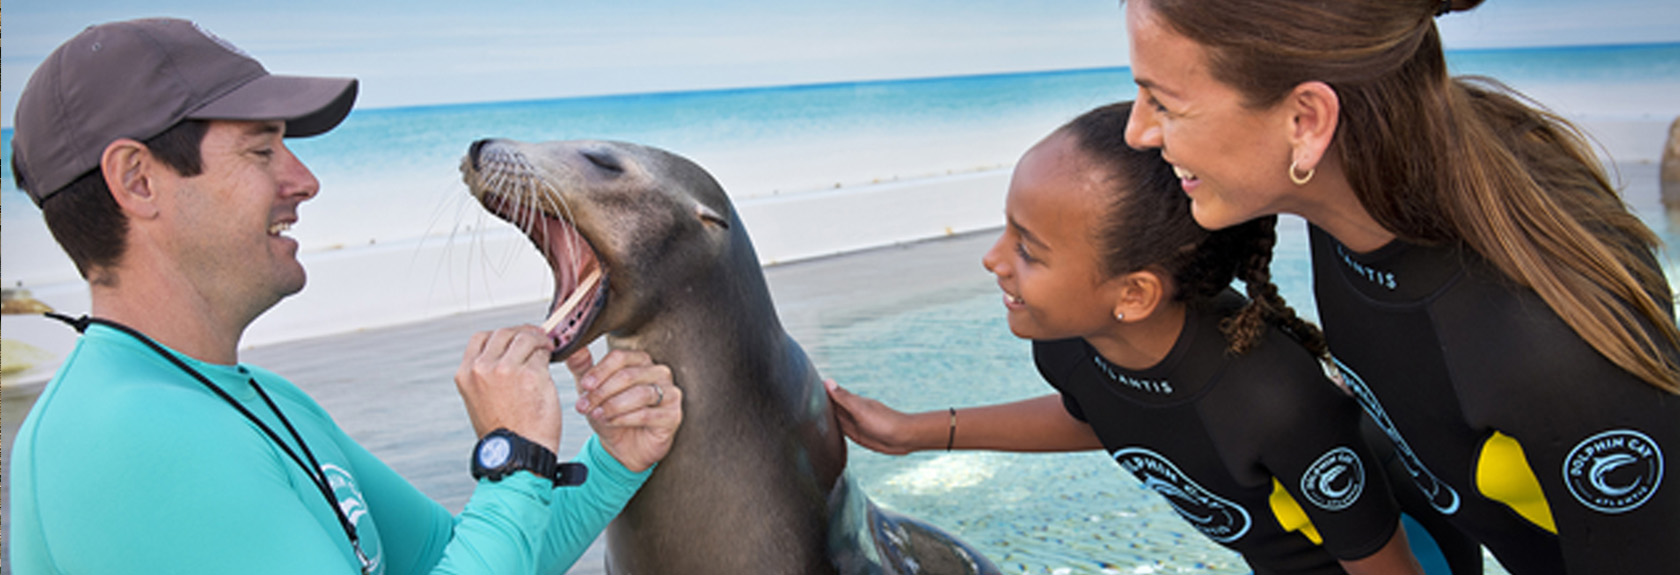 Photo fun with dolphins or sea lions at Atlantis the Palm